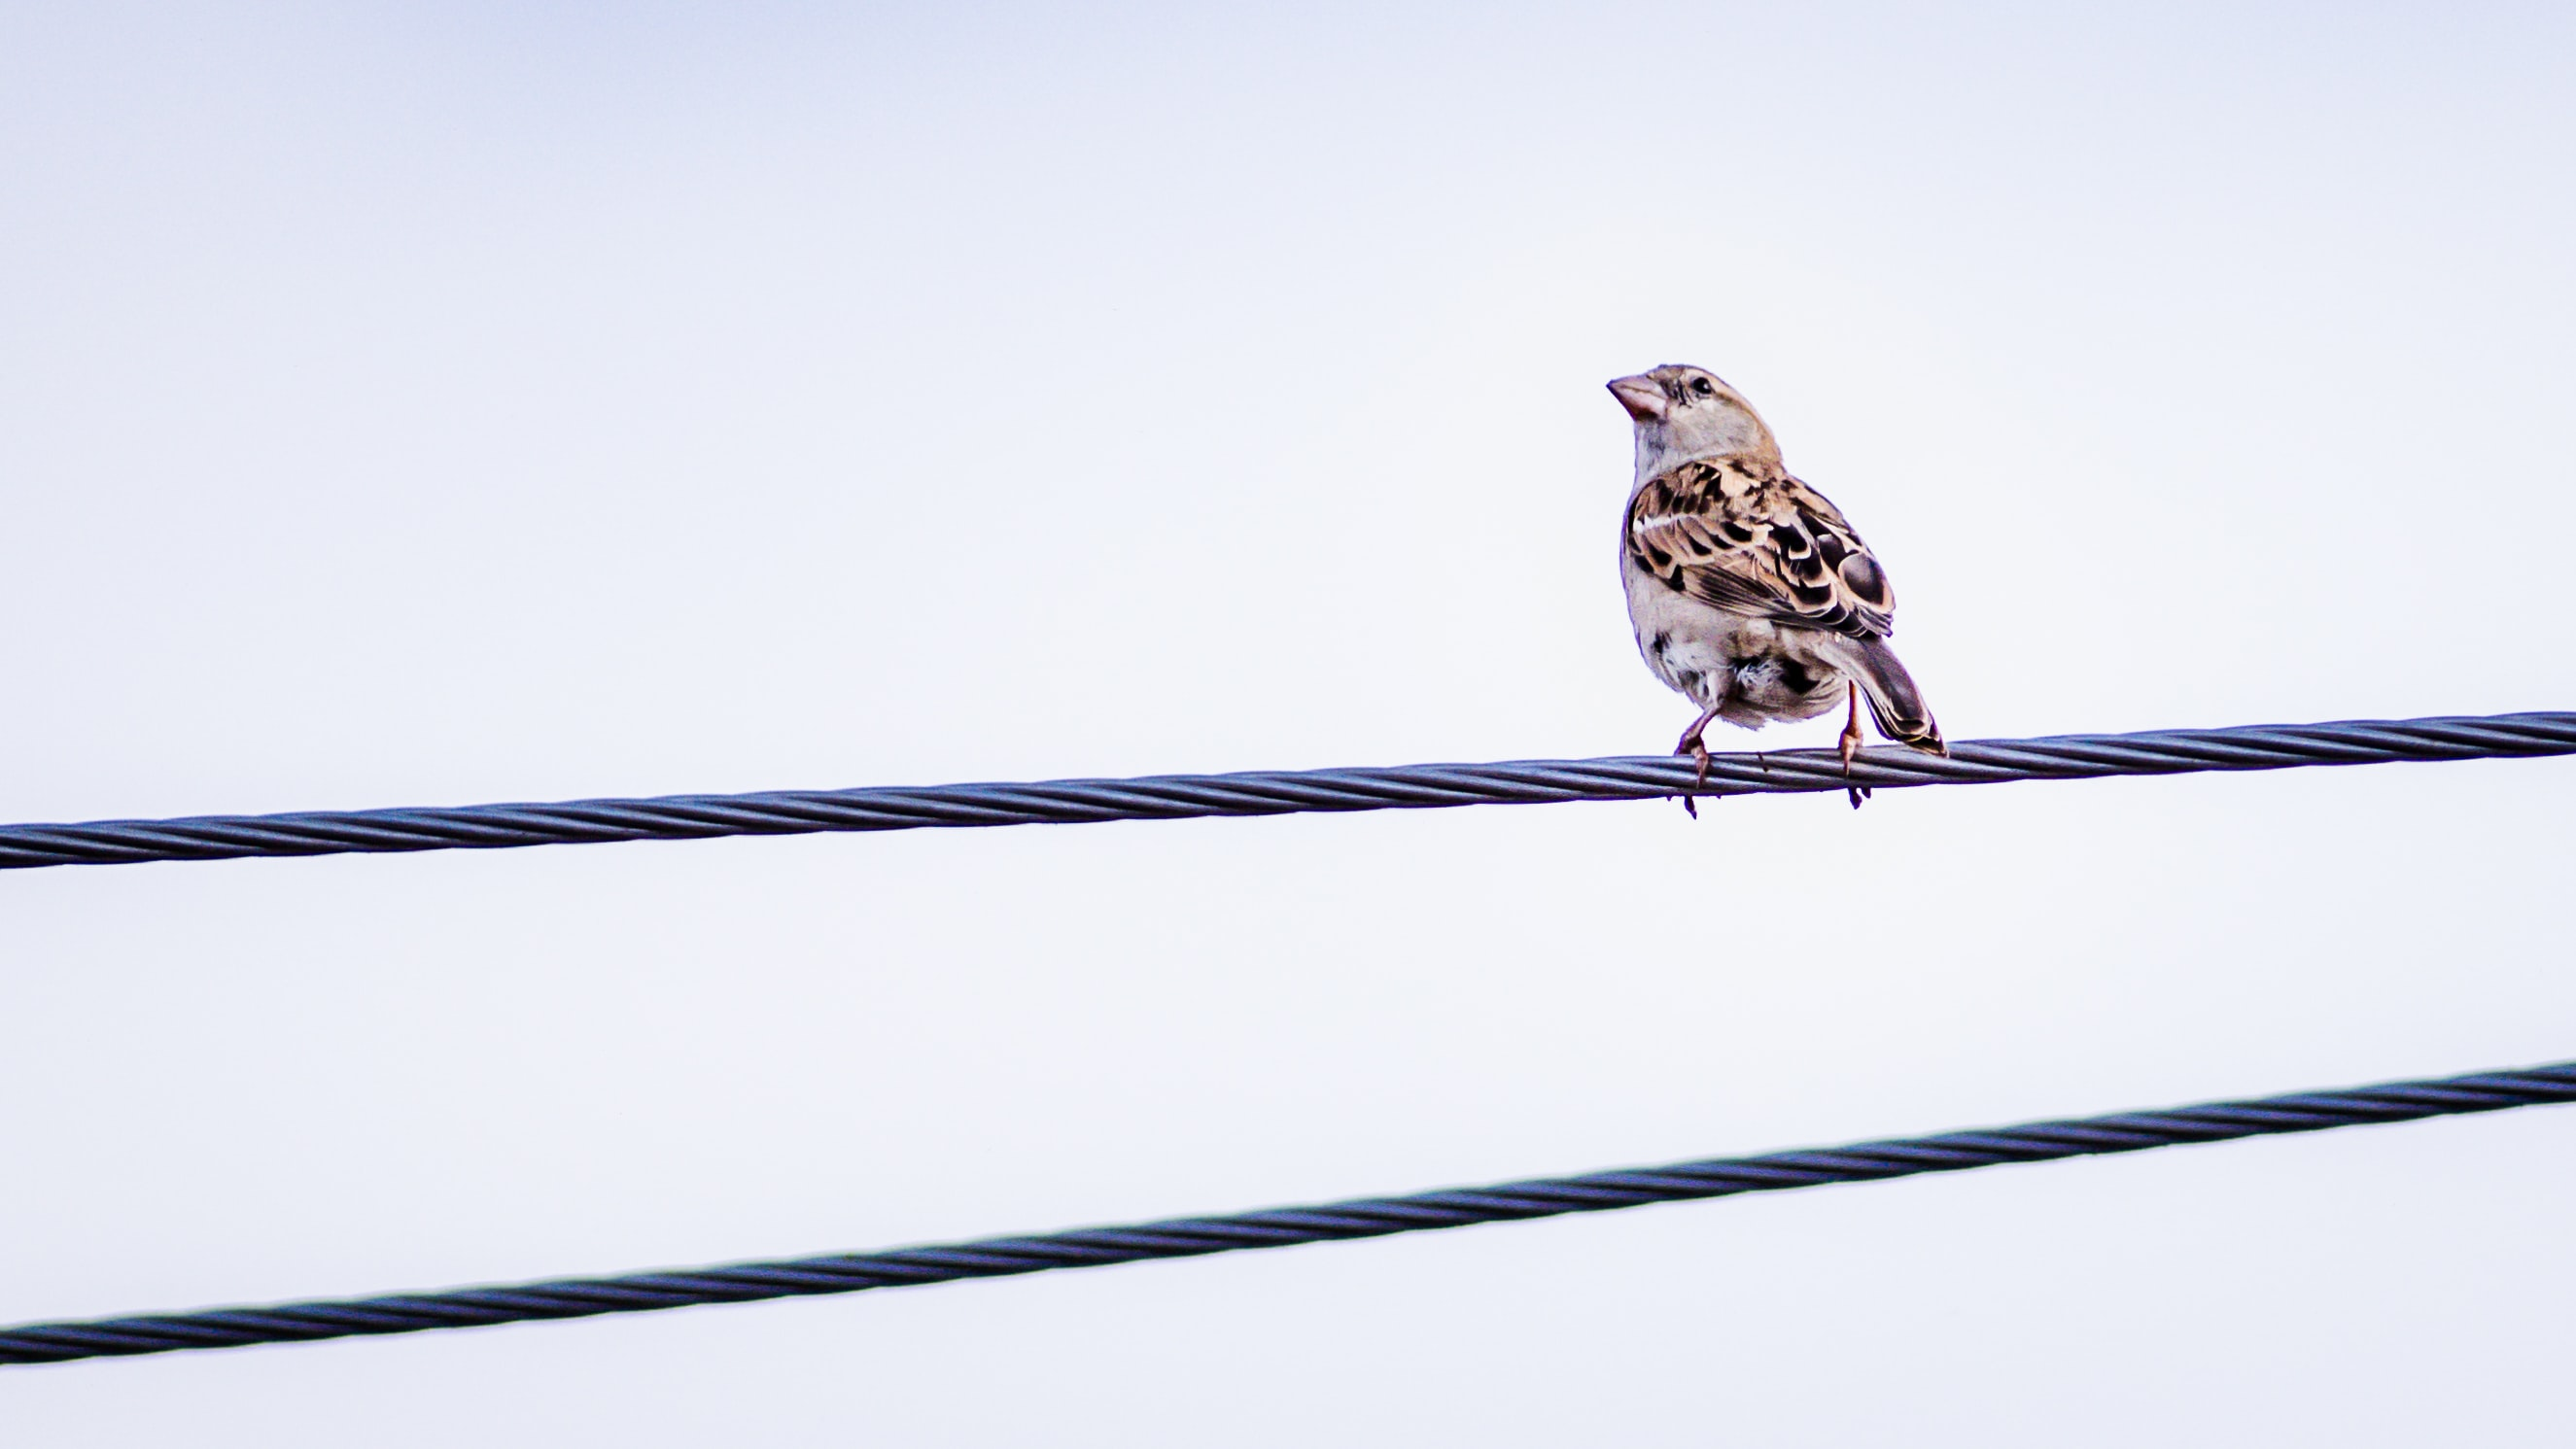 brown bird on steel rope